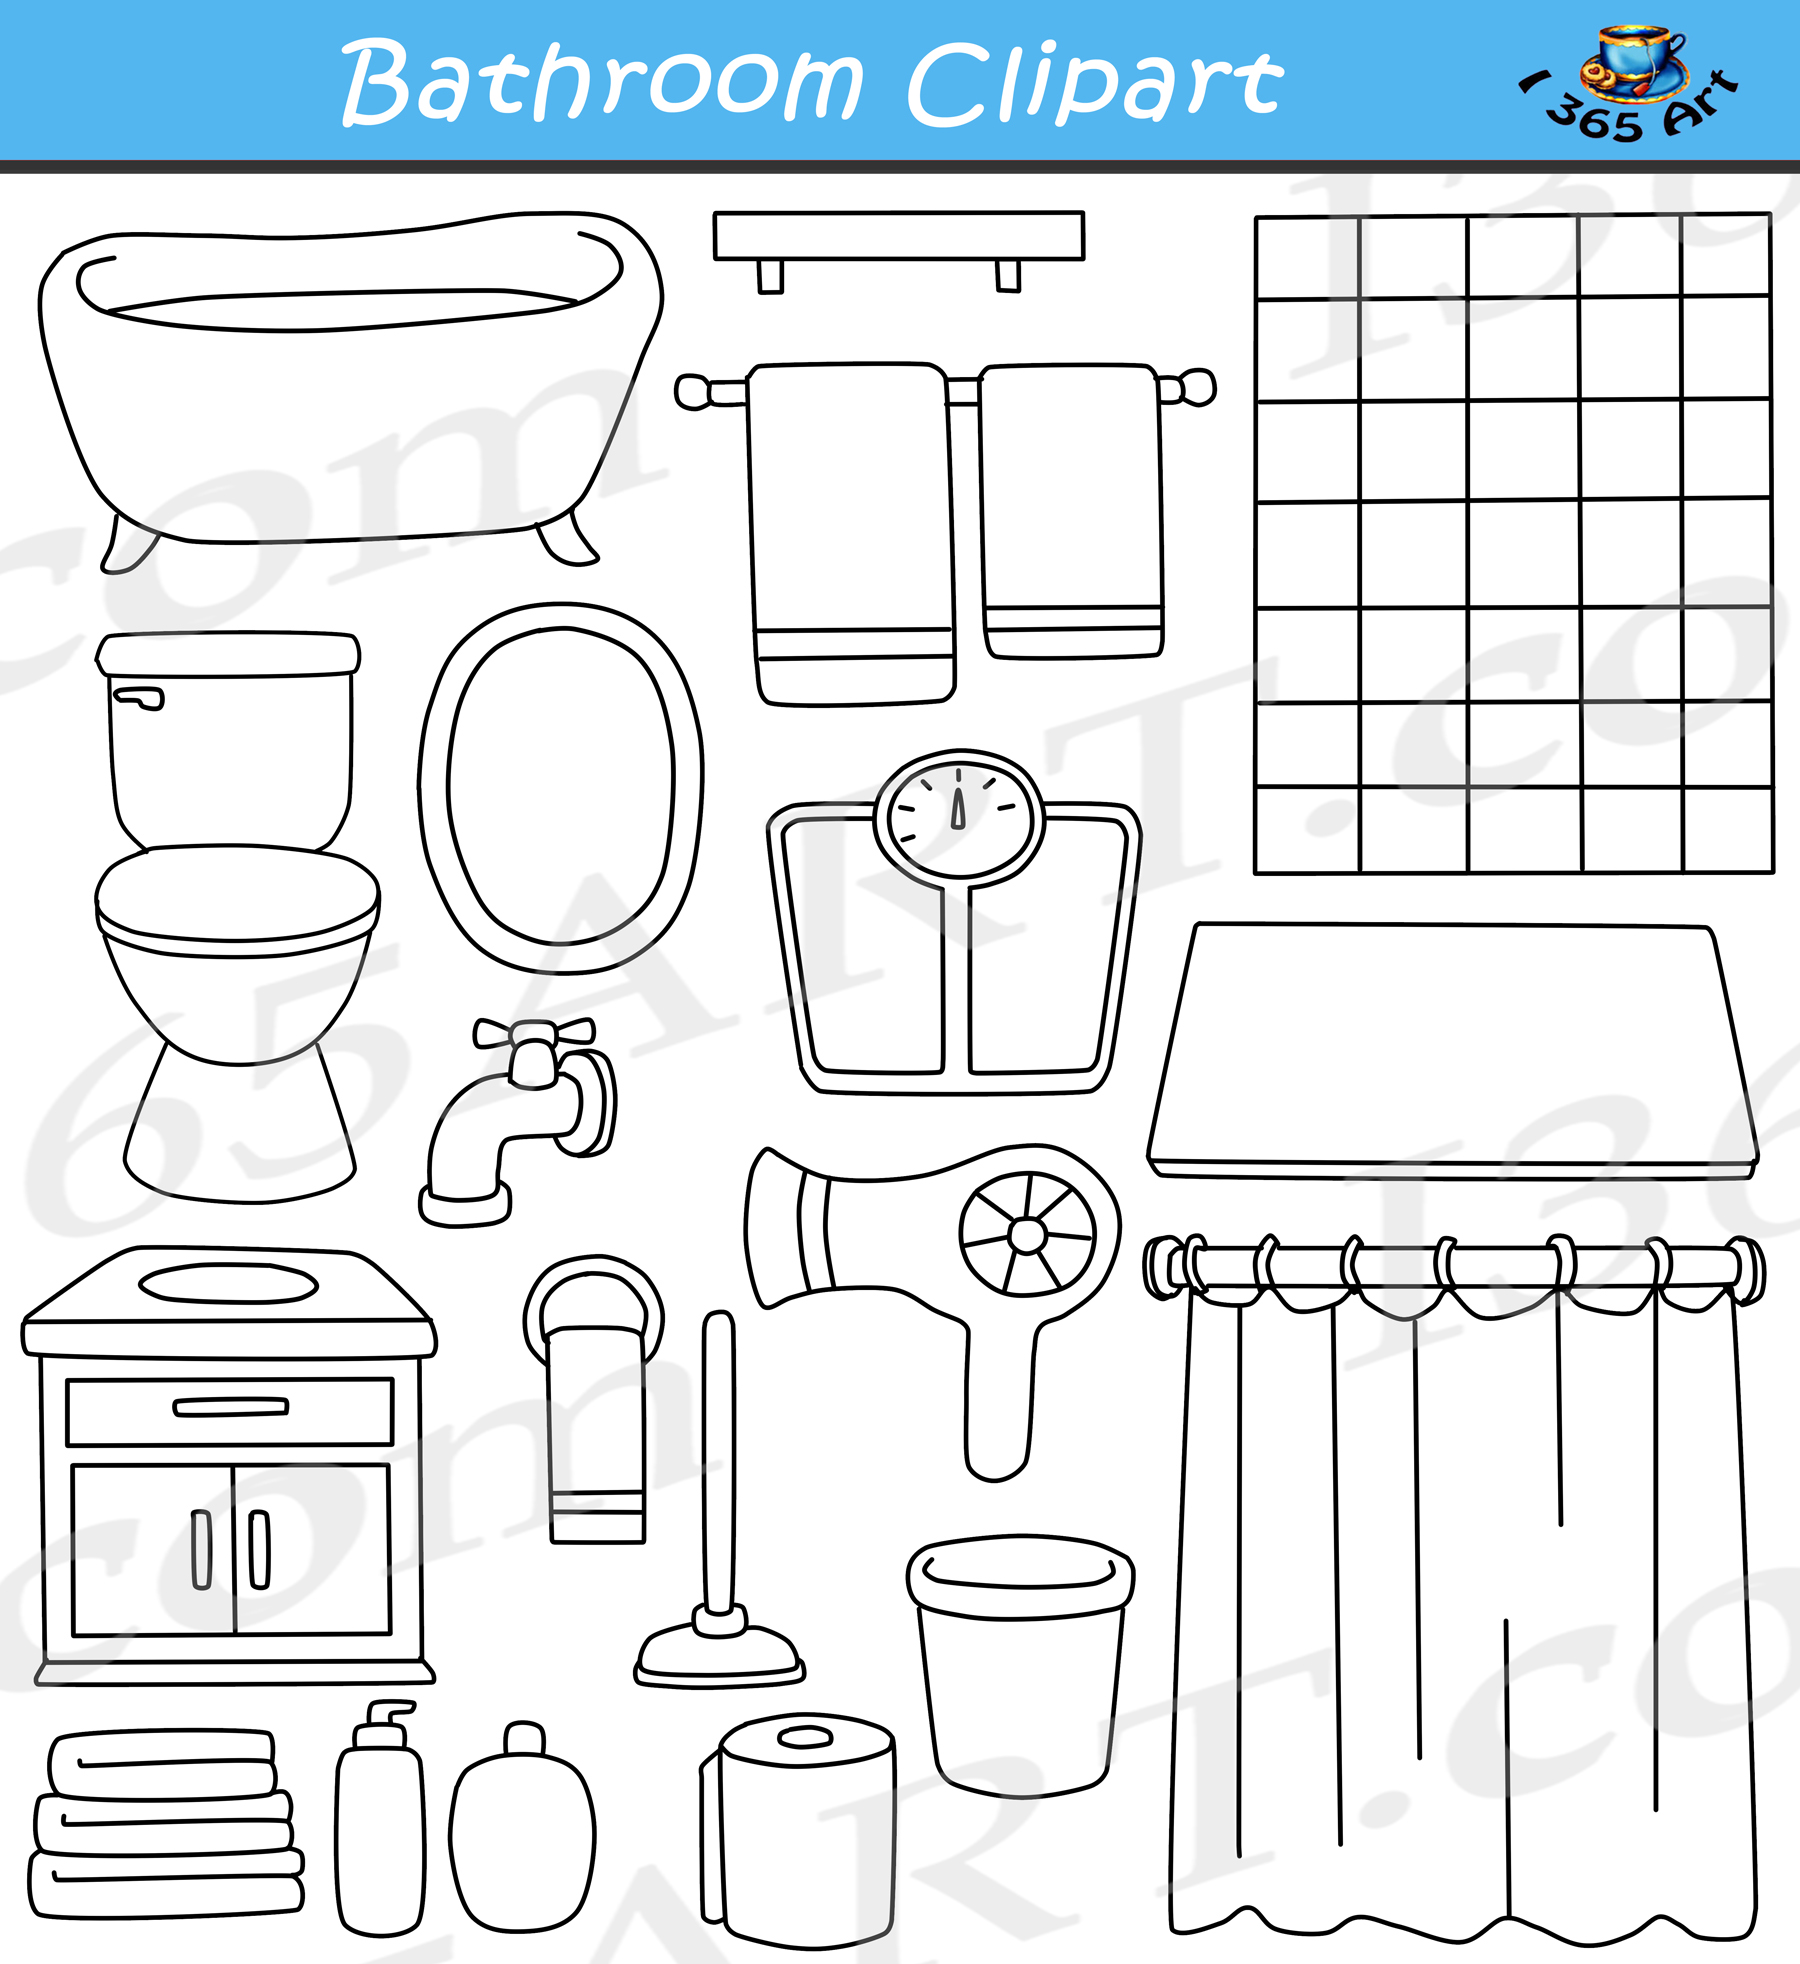 School bathroom line clipart black and white svg royalty free download Bathroom Clipart Set svg royalty free download